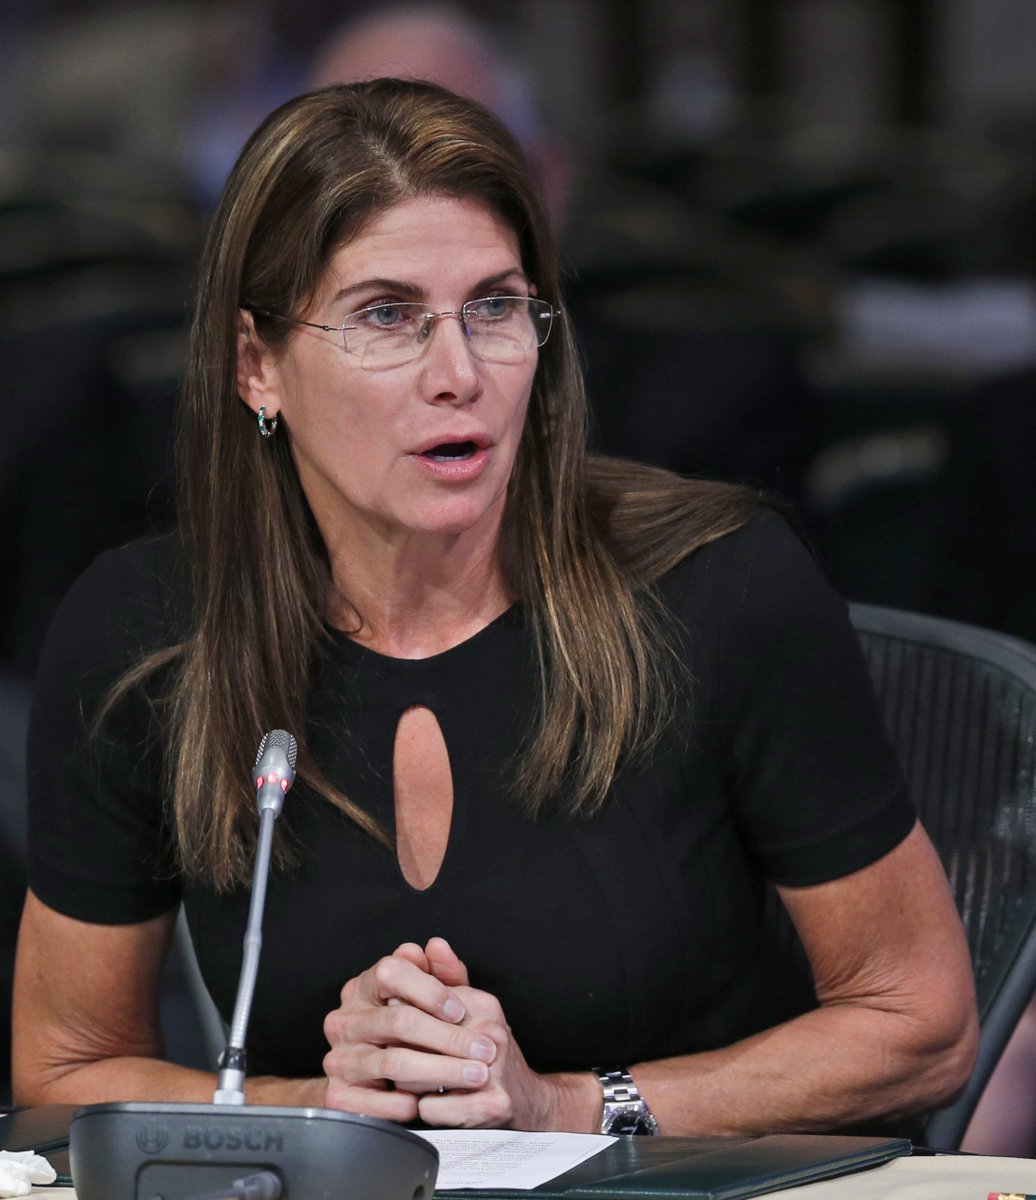 Ex-GOP Rep. Mary Bono resigned as interim head of USA Gymnastic after just 4 days. She cited 'personal attacks' following her decision to post photo of herself blacking out the Nike logo on a shoe — a reference to Colin Kaepernick.